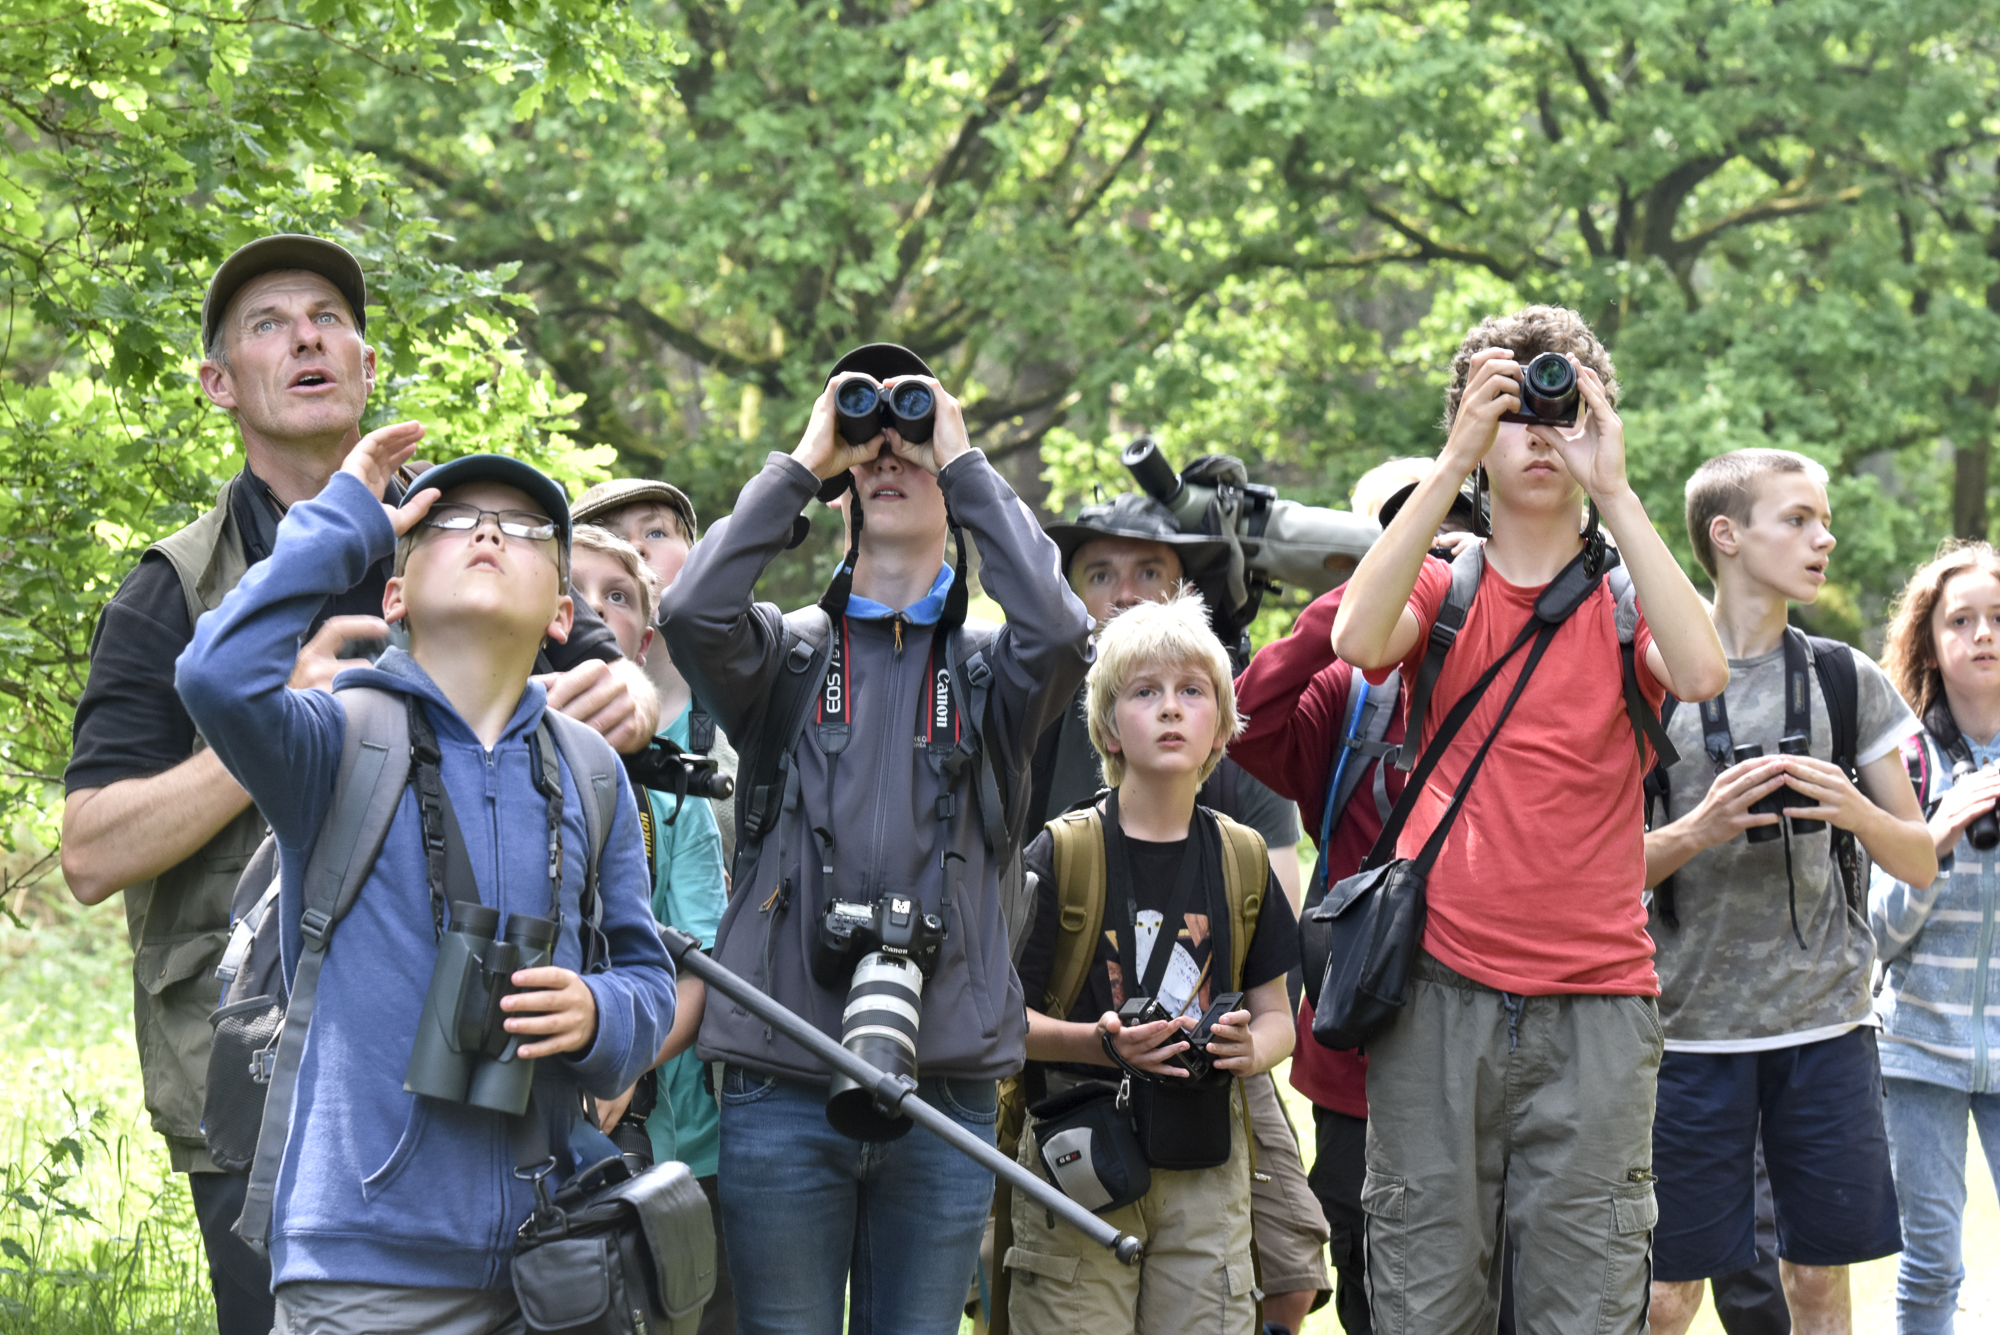 Funds from previous BPOTY competitions have been used to support the BTO Bird Camp programme, designed to encourage interest in ornithology and the natural world in the younger generation.